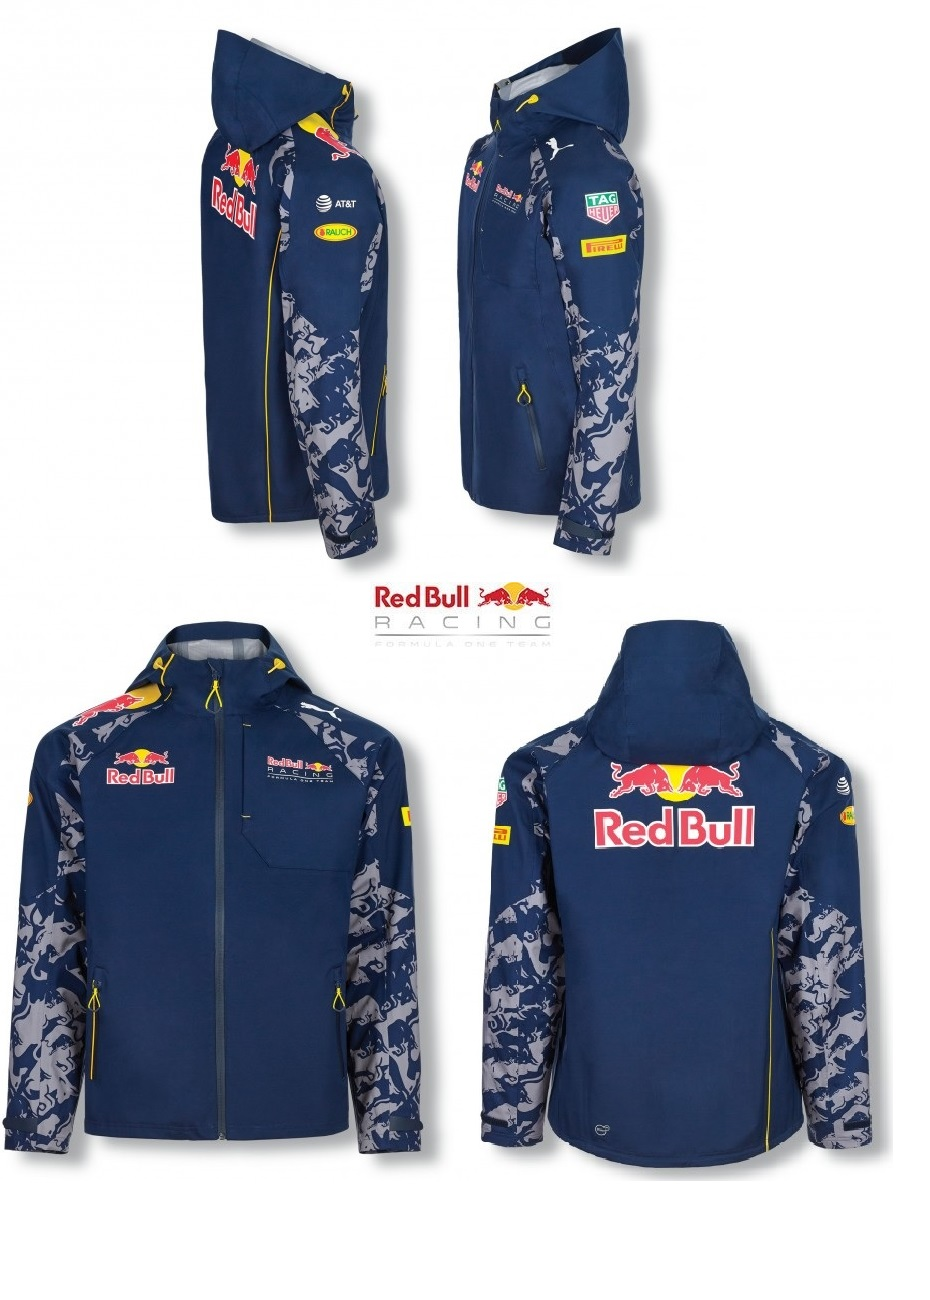 JACKET Rain Coat Red Bull Racing Formula One Team Mens Raincoat PUMA ... 3c4949a2e21cd